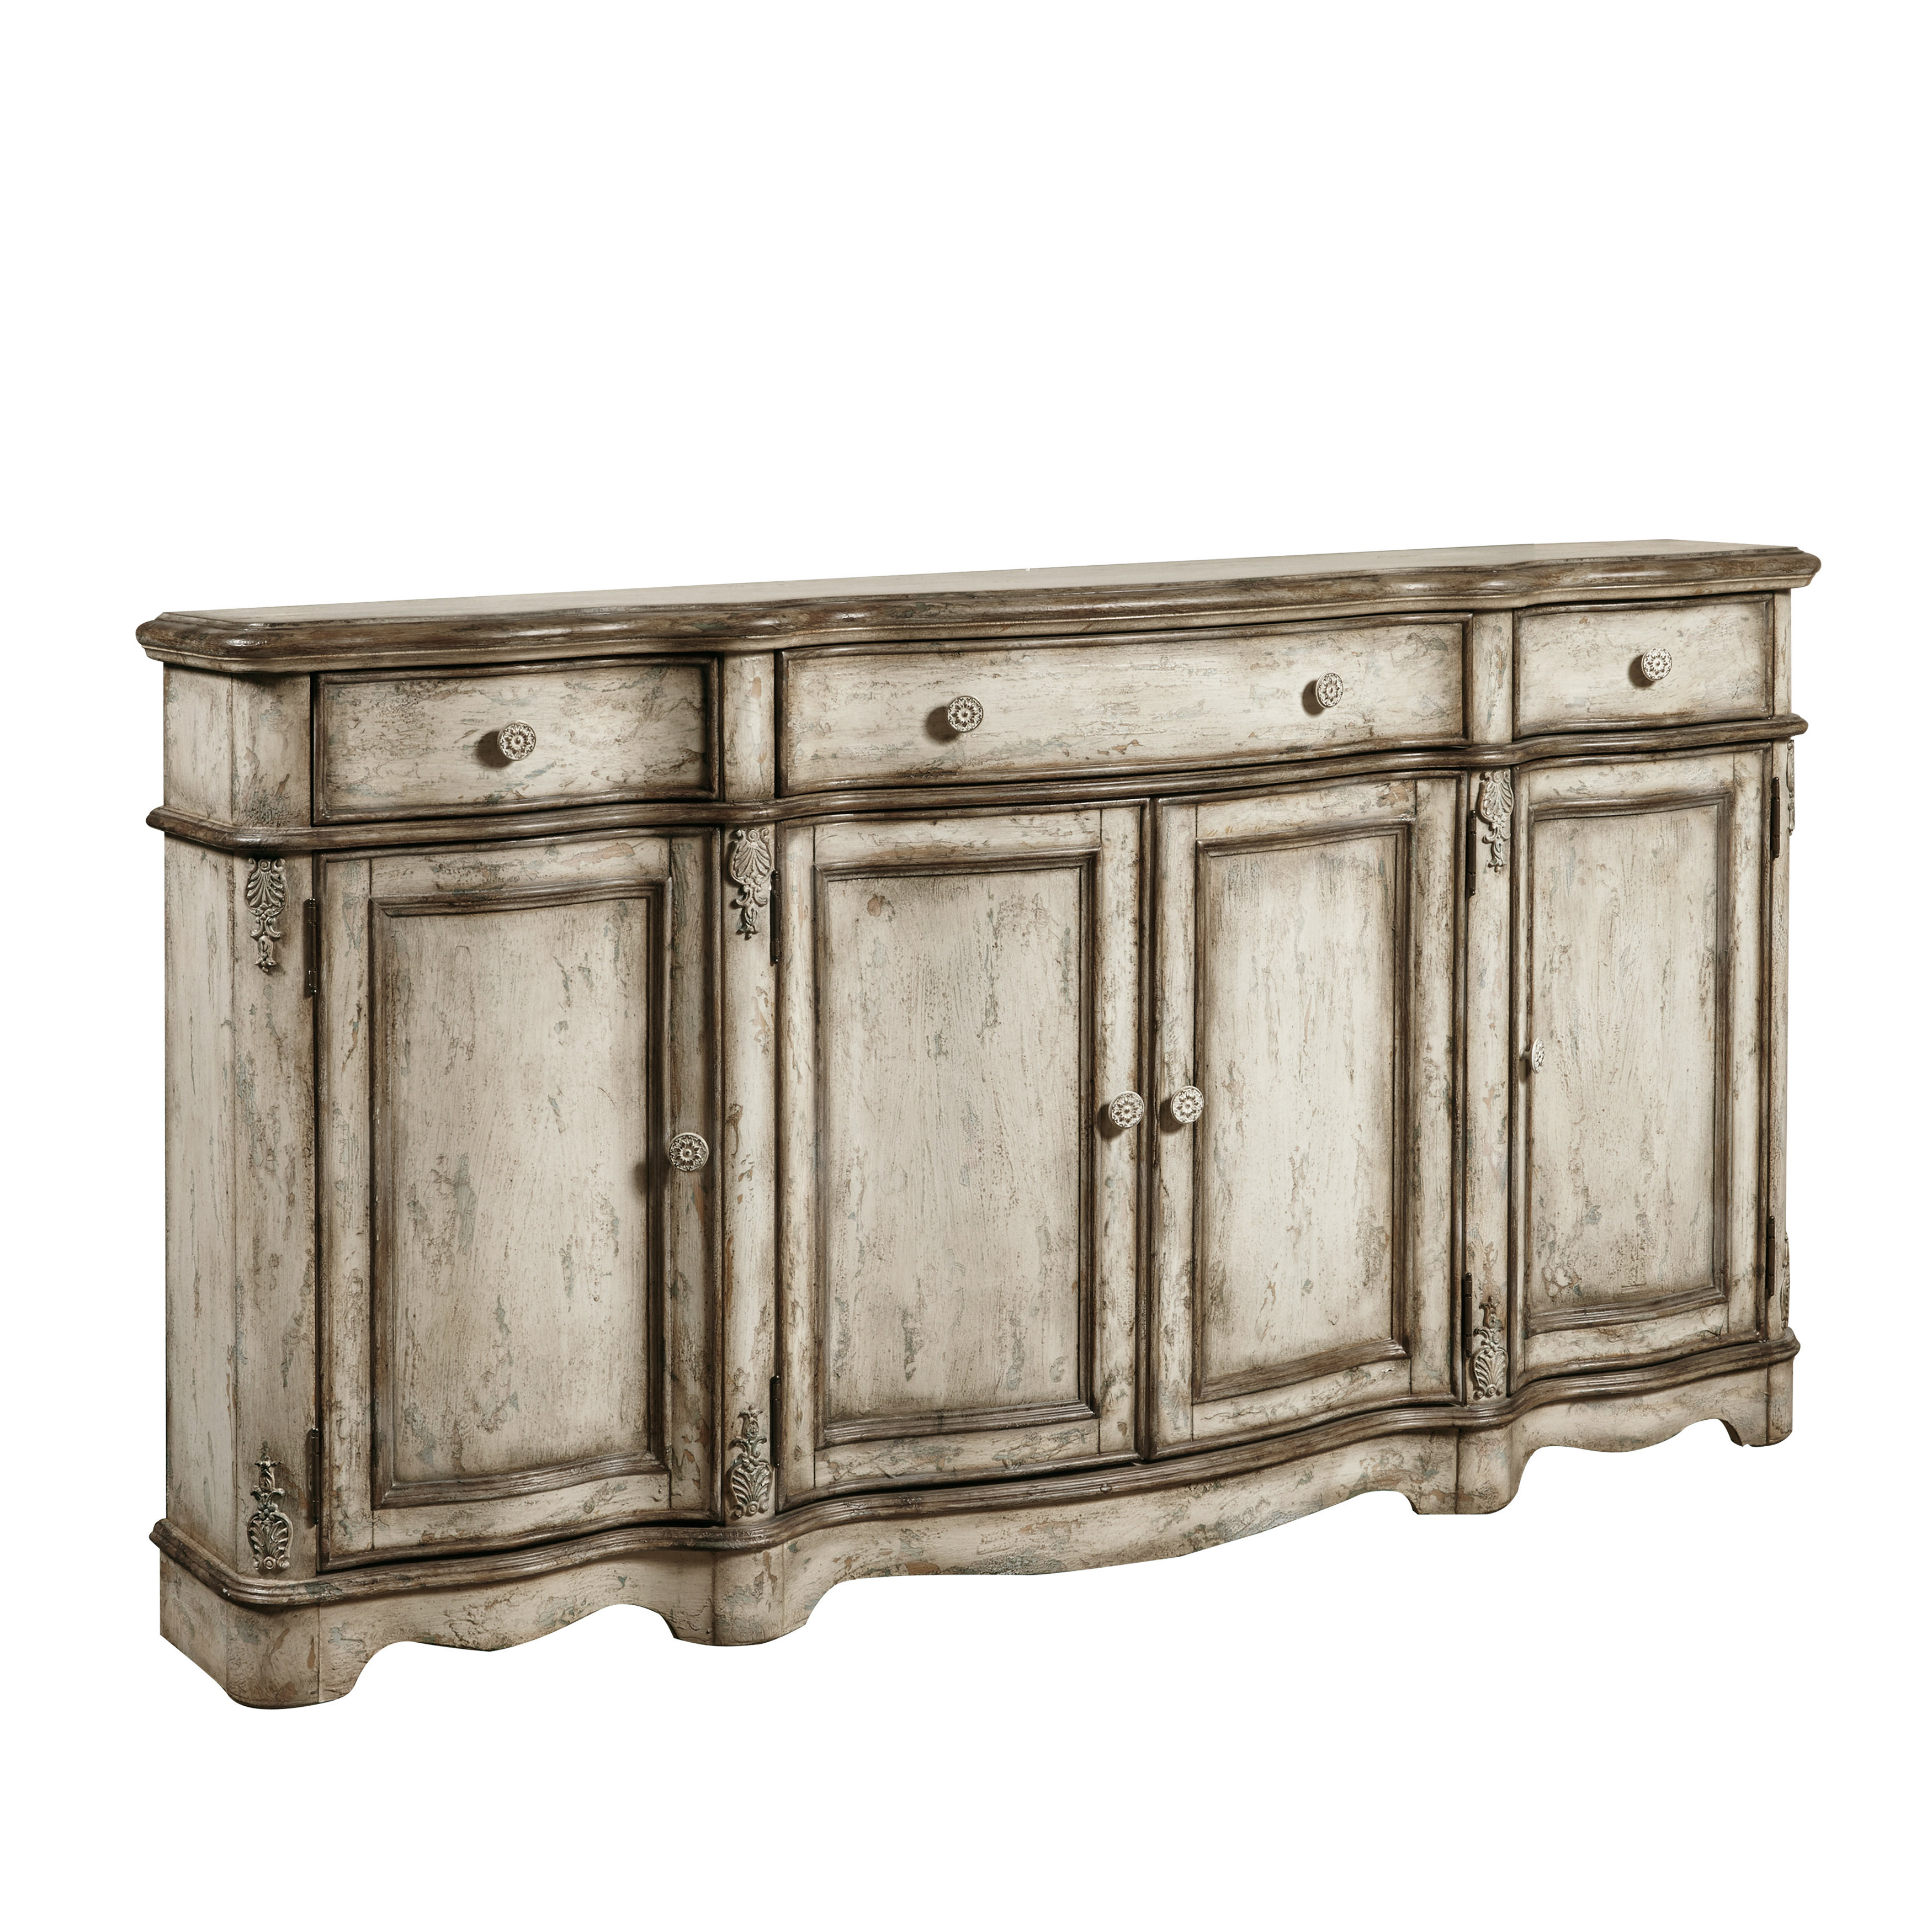 Farmhouse & Rustic Sideboards & Buffets | Birch Lane With Regard To Cambrai Sideboards (View 7 of 20)